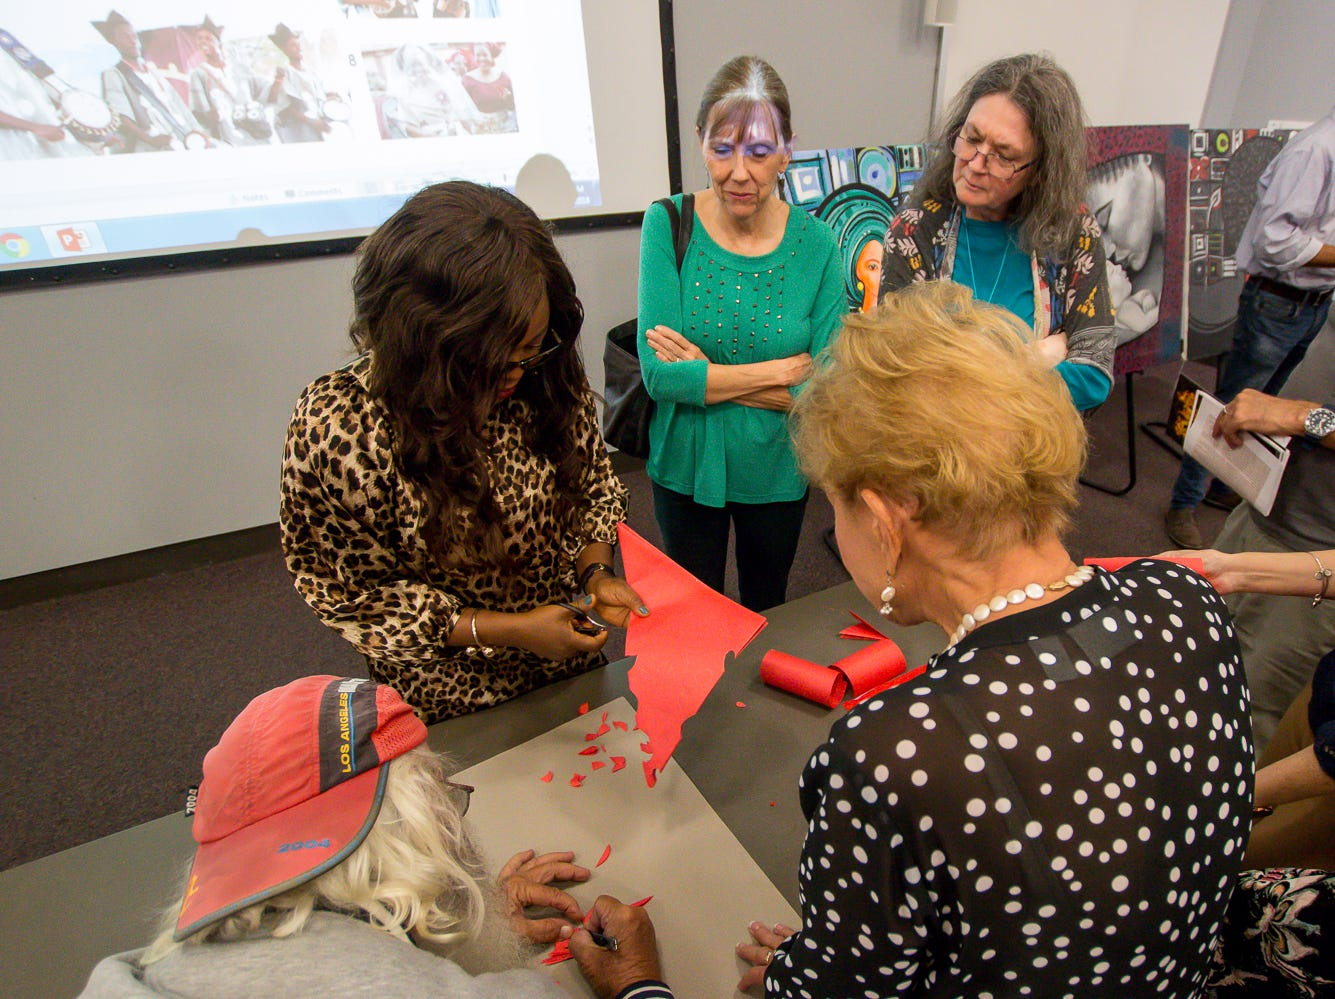 The Great Gulfcoast Arts Festival's Invited International Artist Abigail Nnaji, of Abuja, Nigeria, top left, demonstrates how she uses the Chinese paper cutting technique during a presentation in the Anna Lamar Switzer Building at Pensacola State College on Tuesday, October 30, 2018.